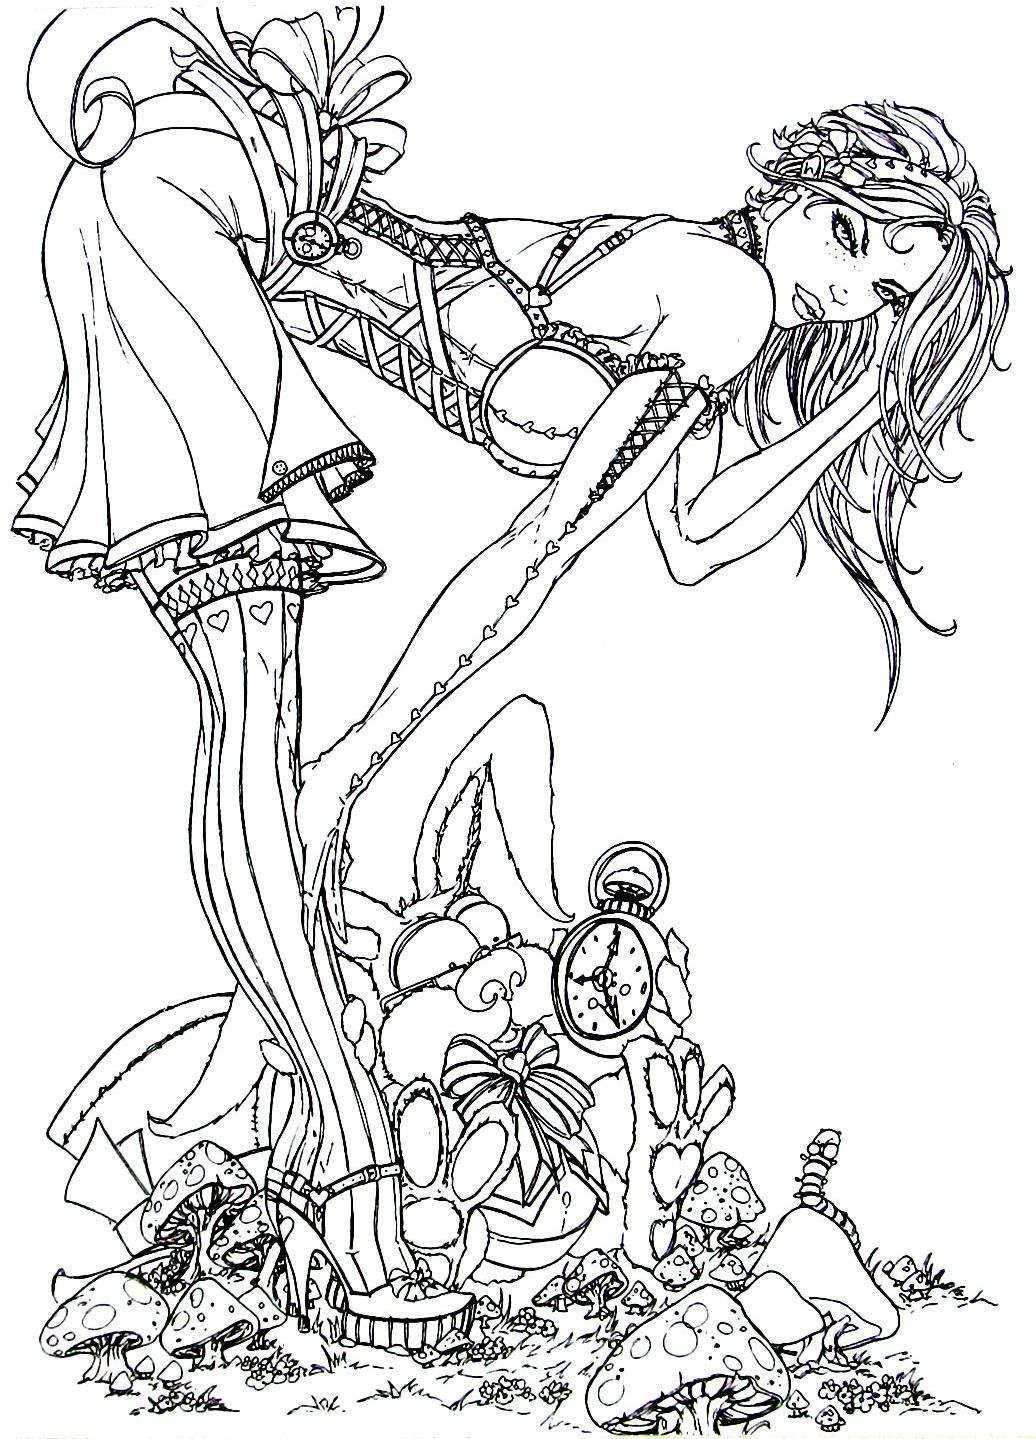 Sultry babe in sexy dress and stockings   Sultry Babe Coloring Book ...